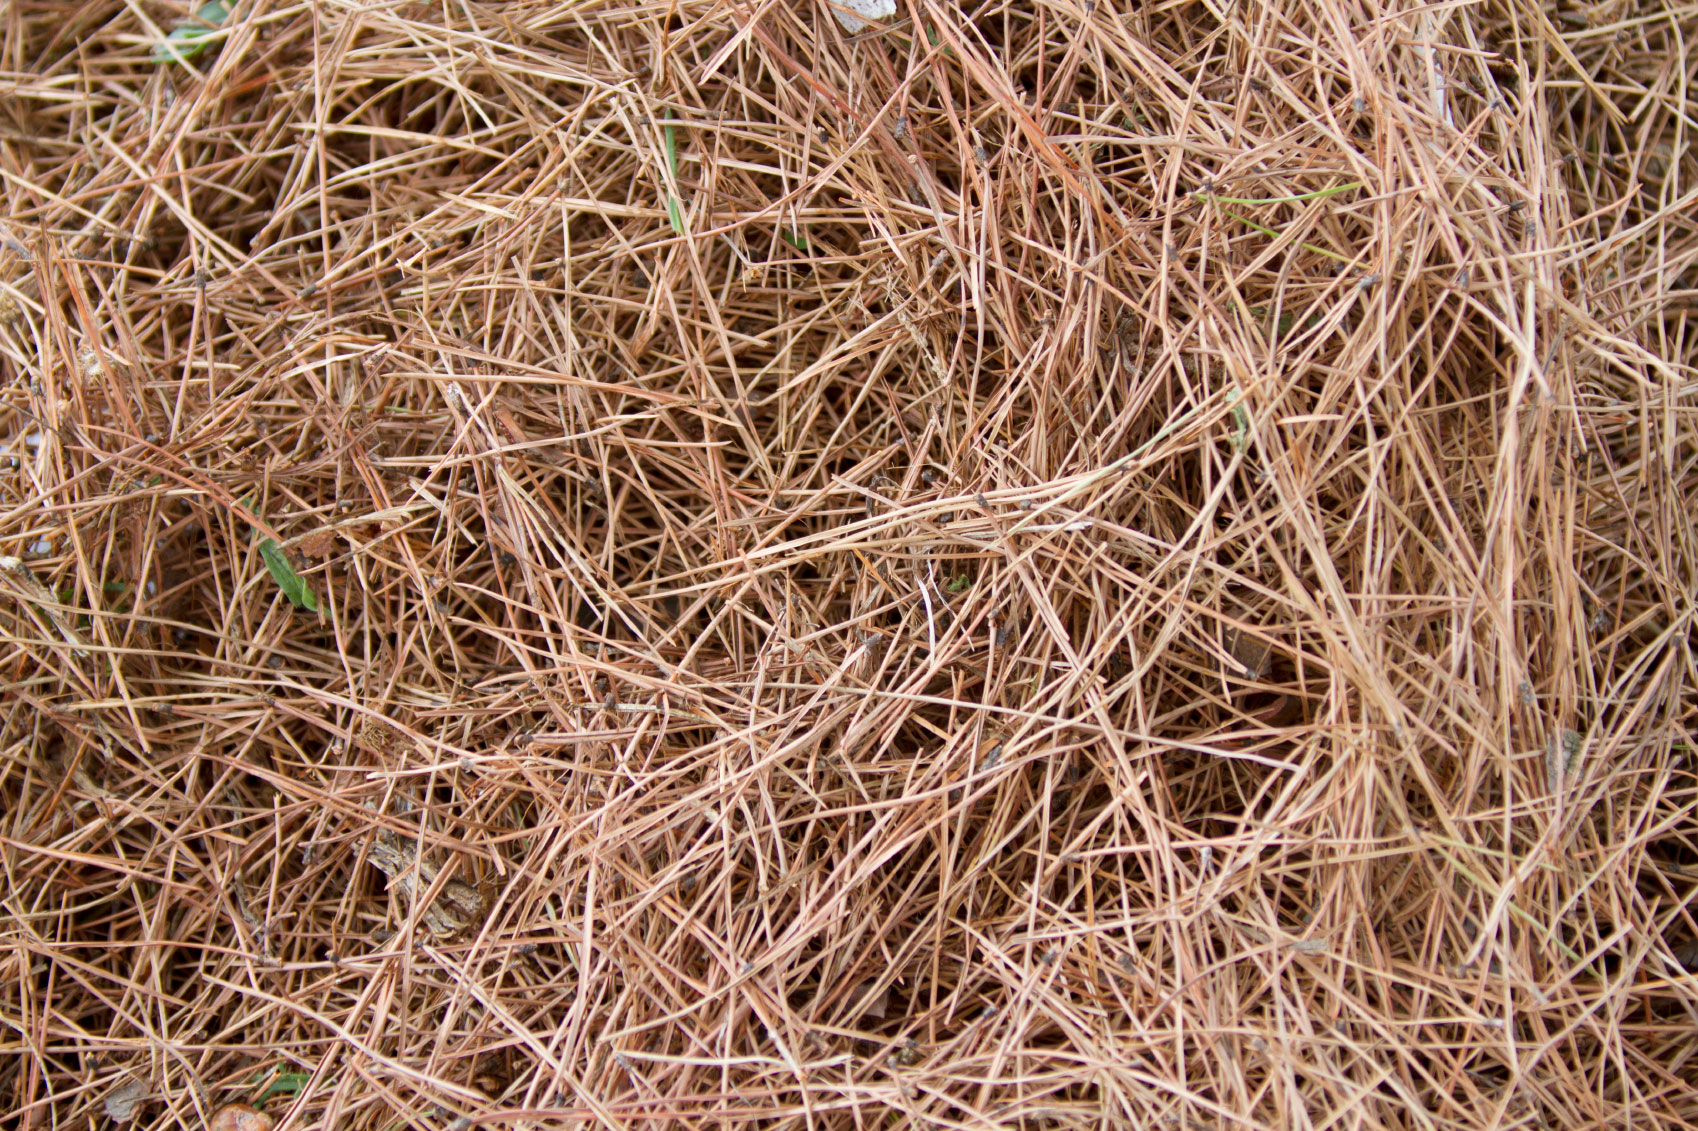 Pine Needles In Compost - Are Pine Needles Bad For Compost